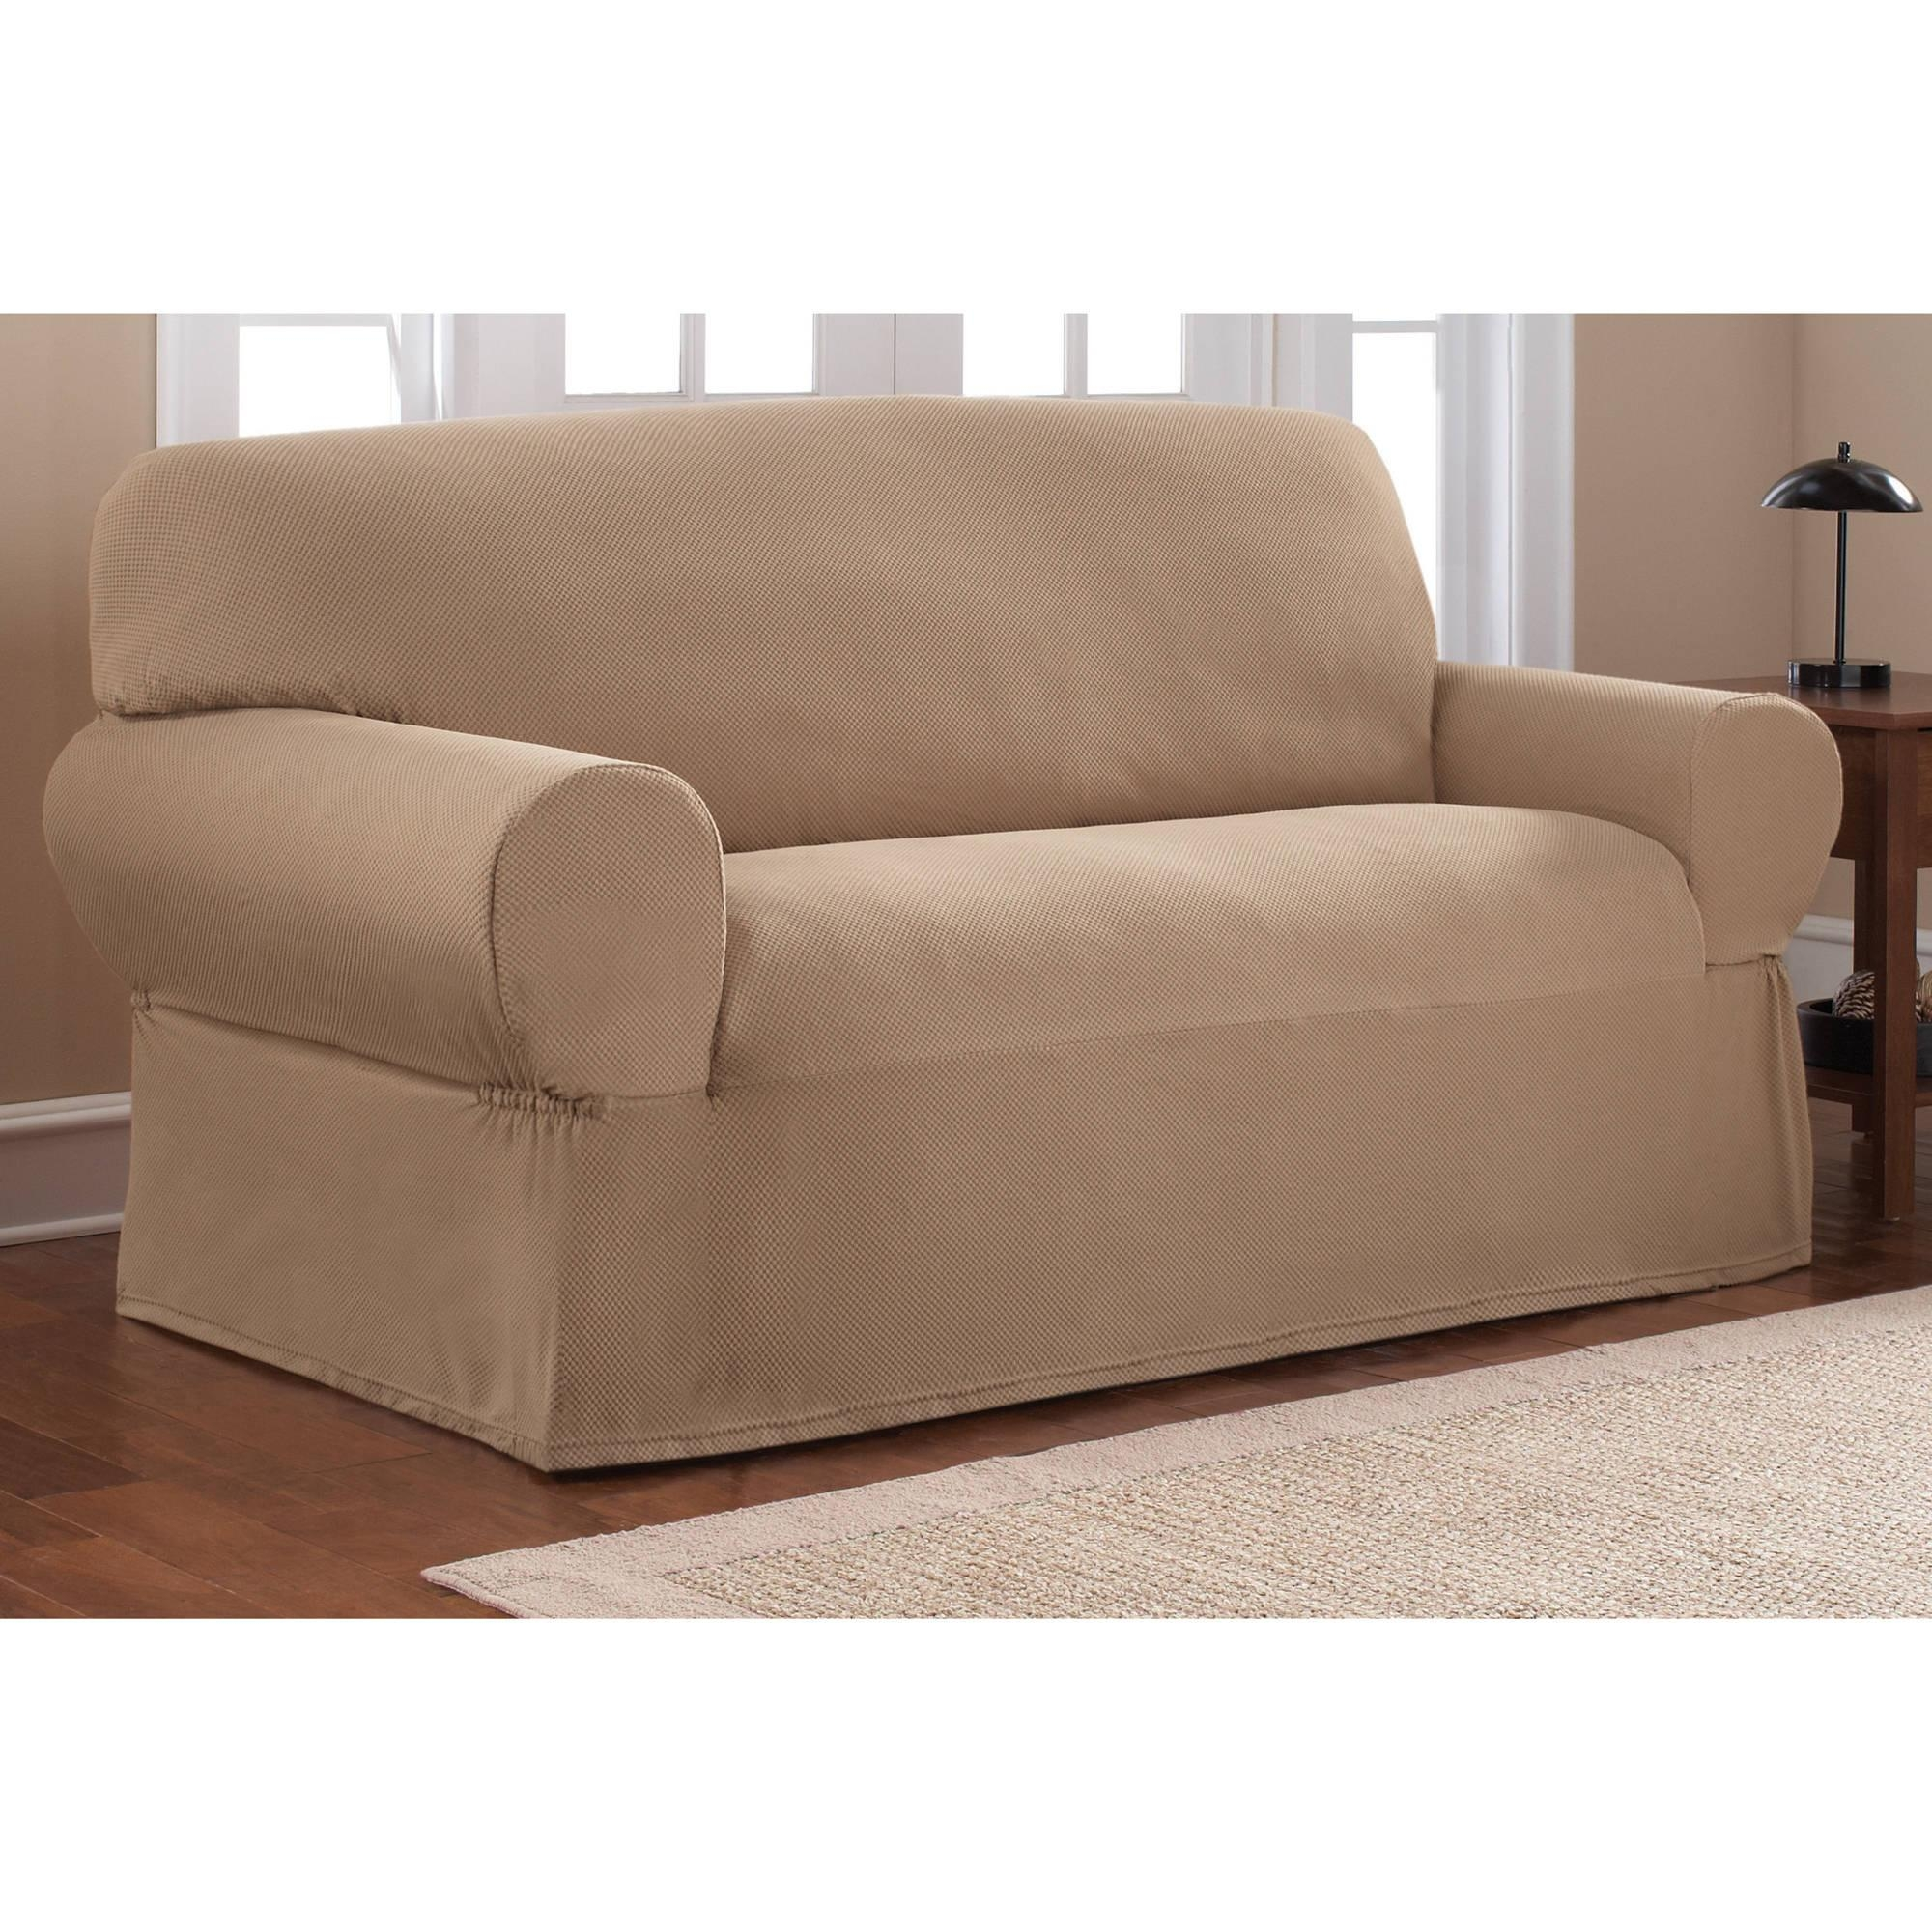 Cheap Sofa And Loveseat Slipcovers Www Redglobalmx Org